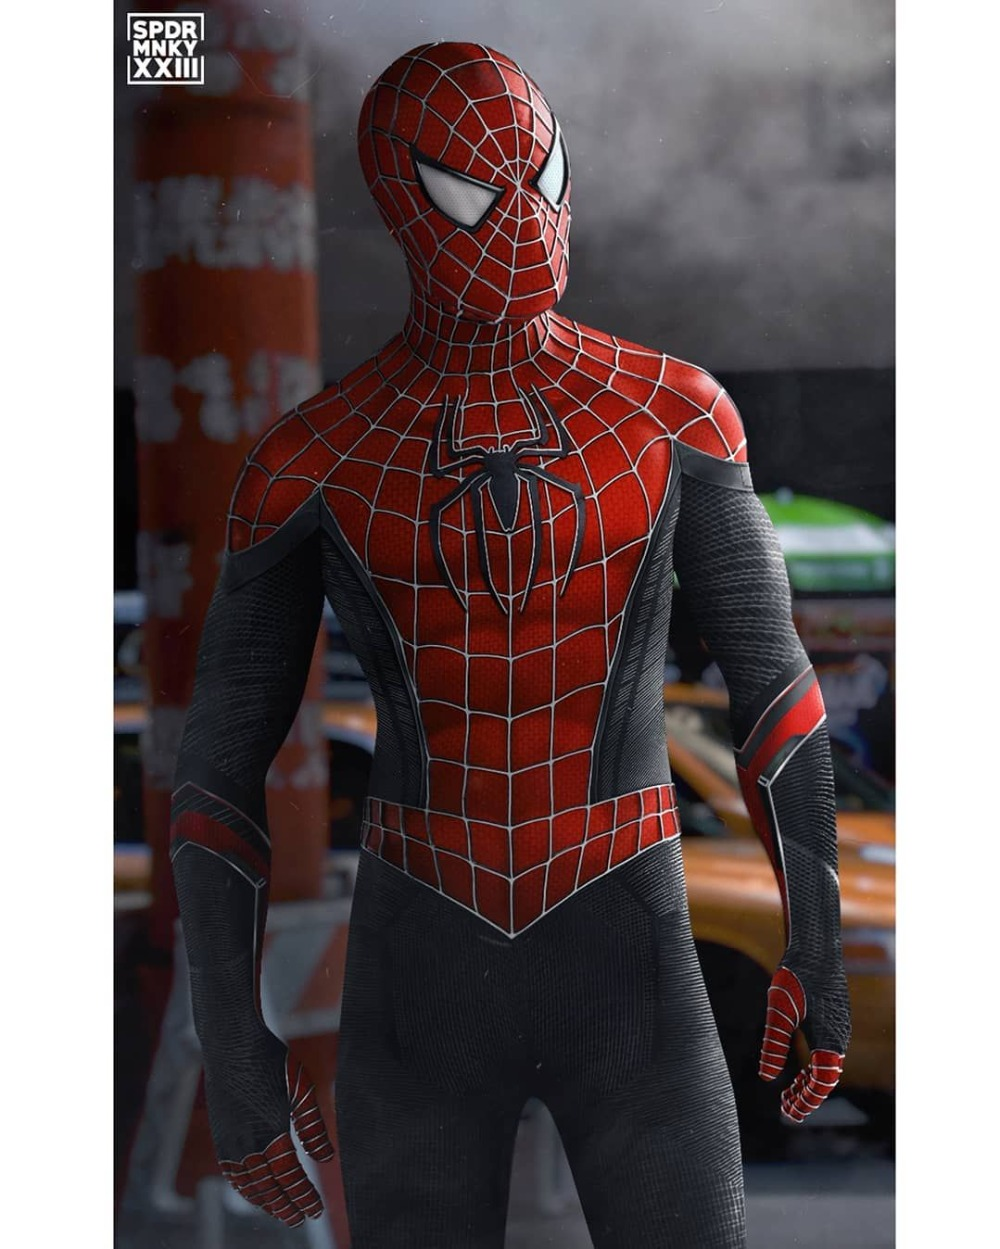 2019 Newest Spider-Man Costume Far From Home Raimi Spider Hybrid Suit Spandex Halloween Spiderman Costumes For Adult/Kids/Custom